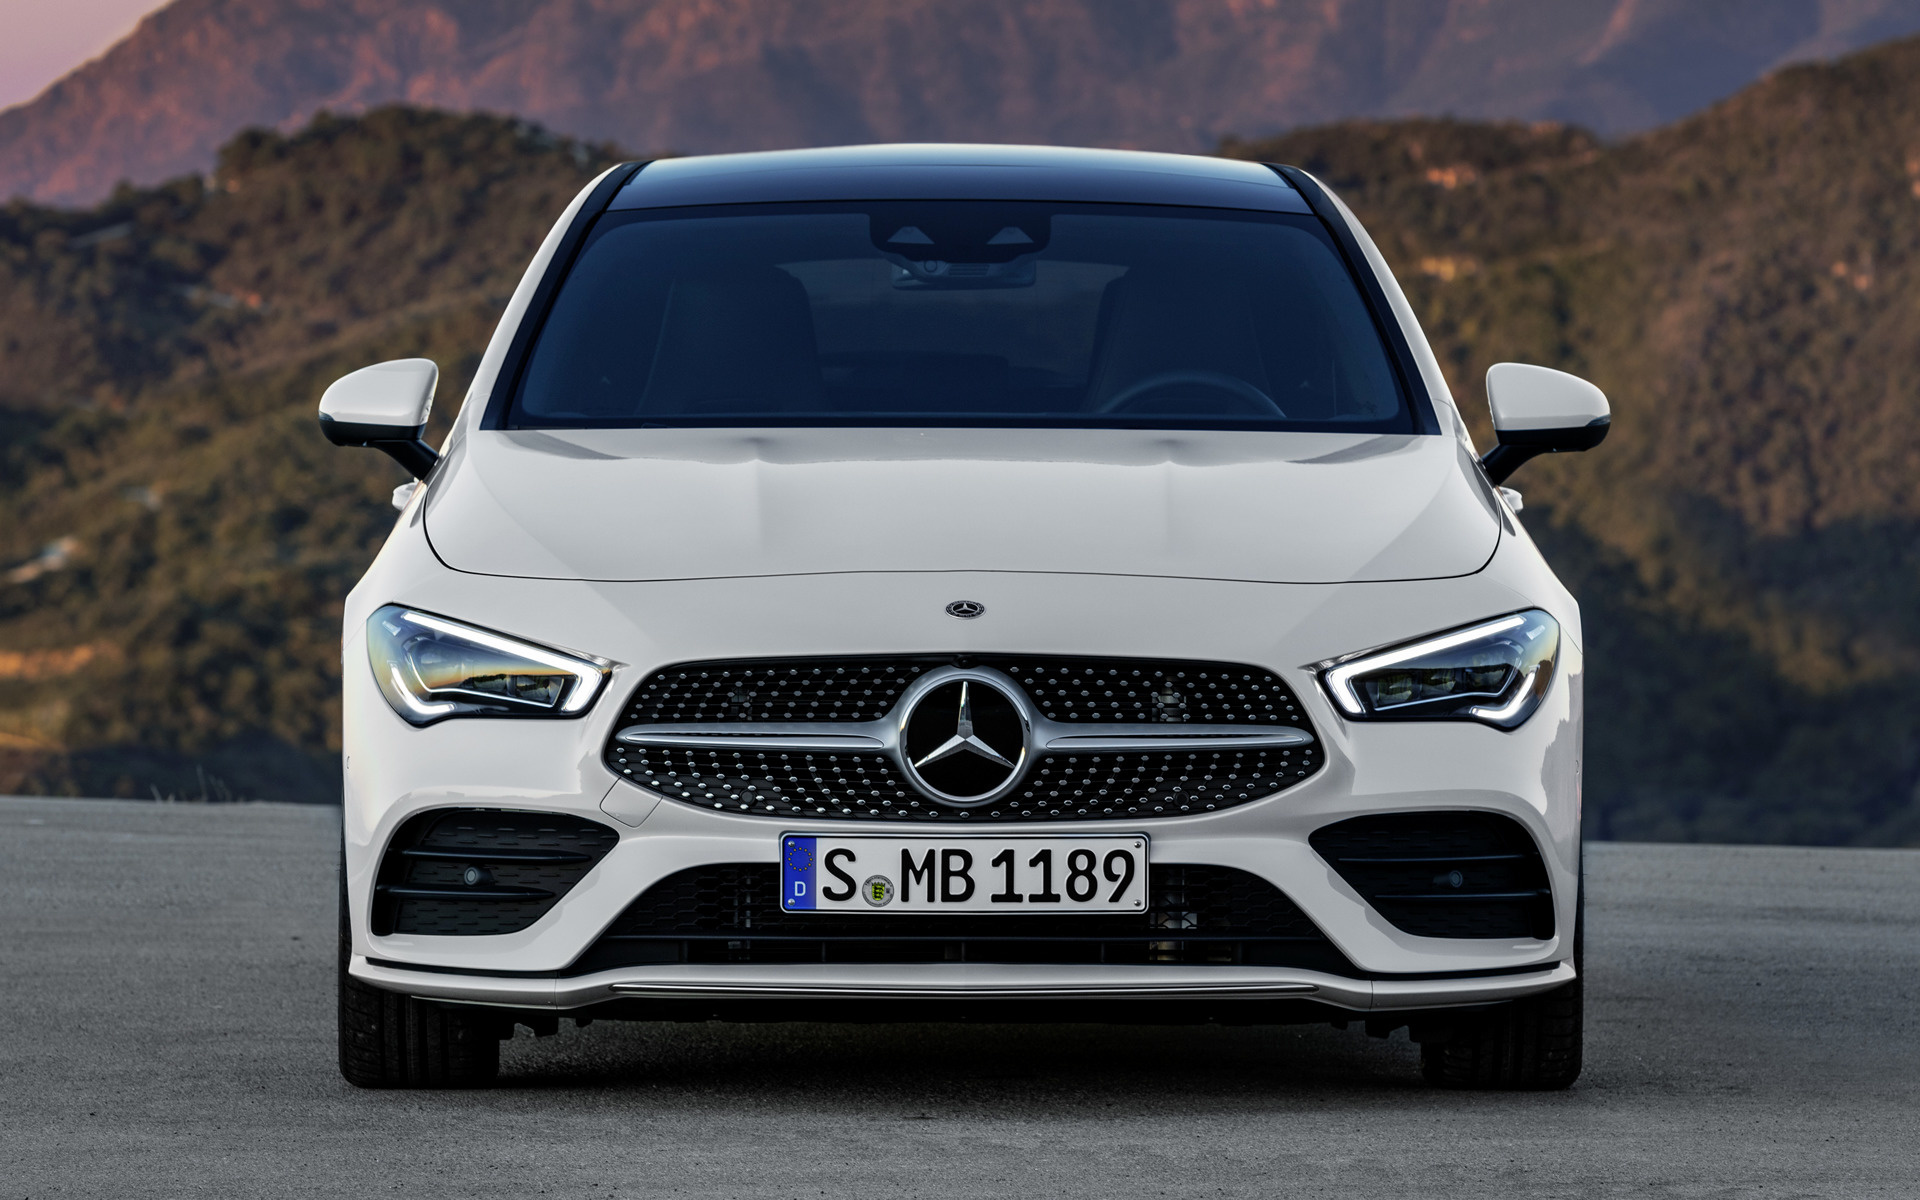 2019 Mercedes Benz CLA Class Shooting Brake AMG Line   Wallpapers 1920x1200